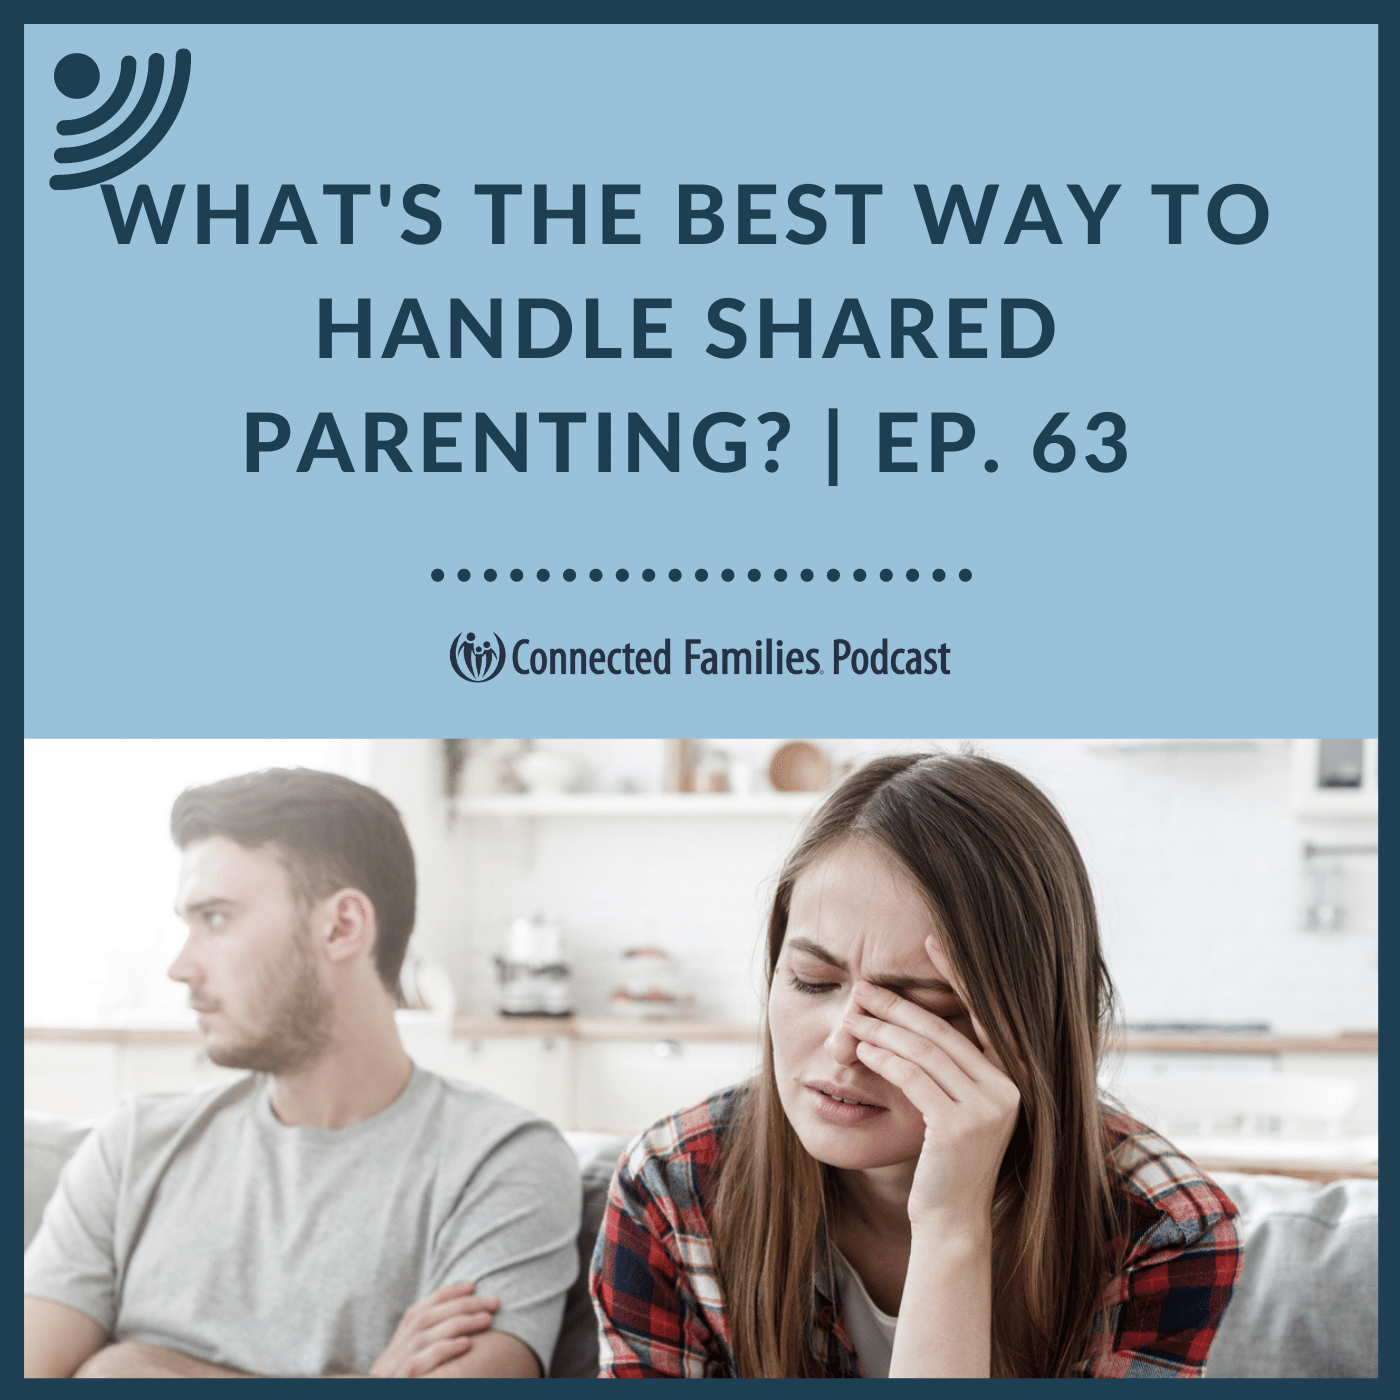 What's the Best Way to Handle Shared Parenting?